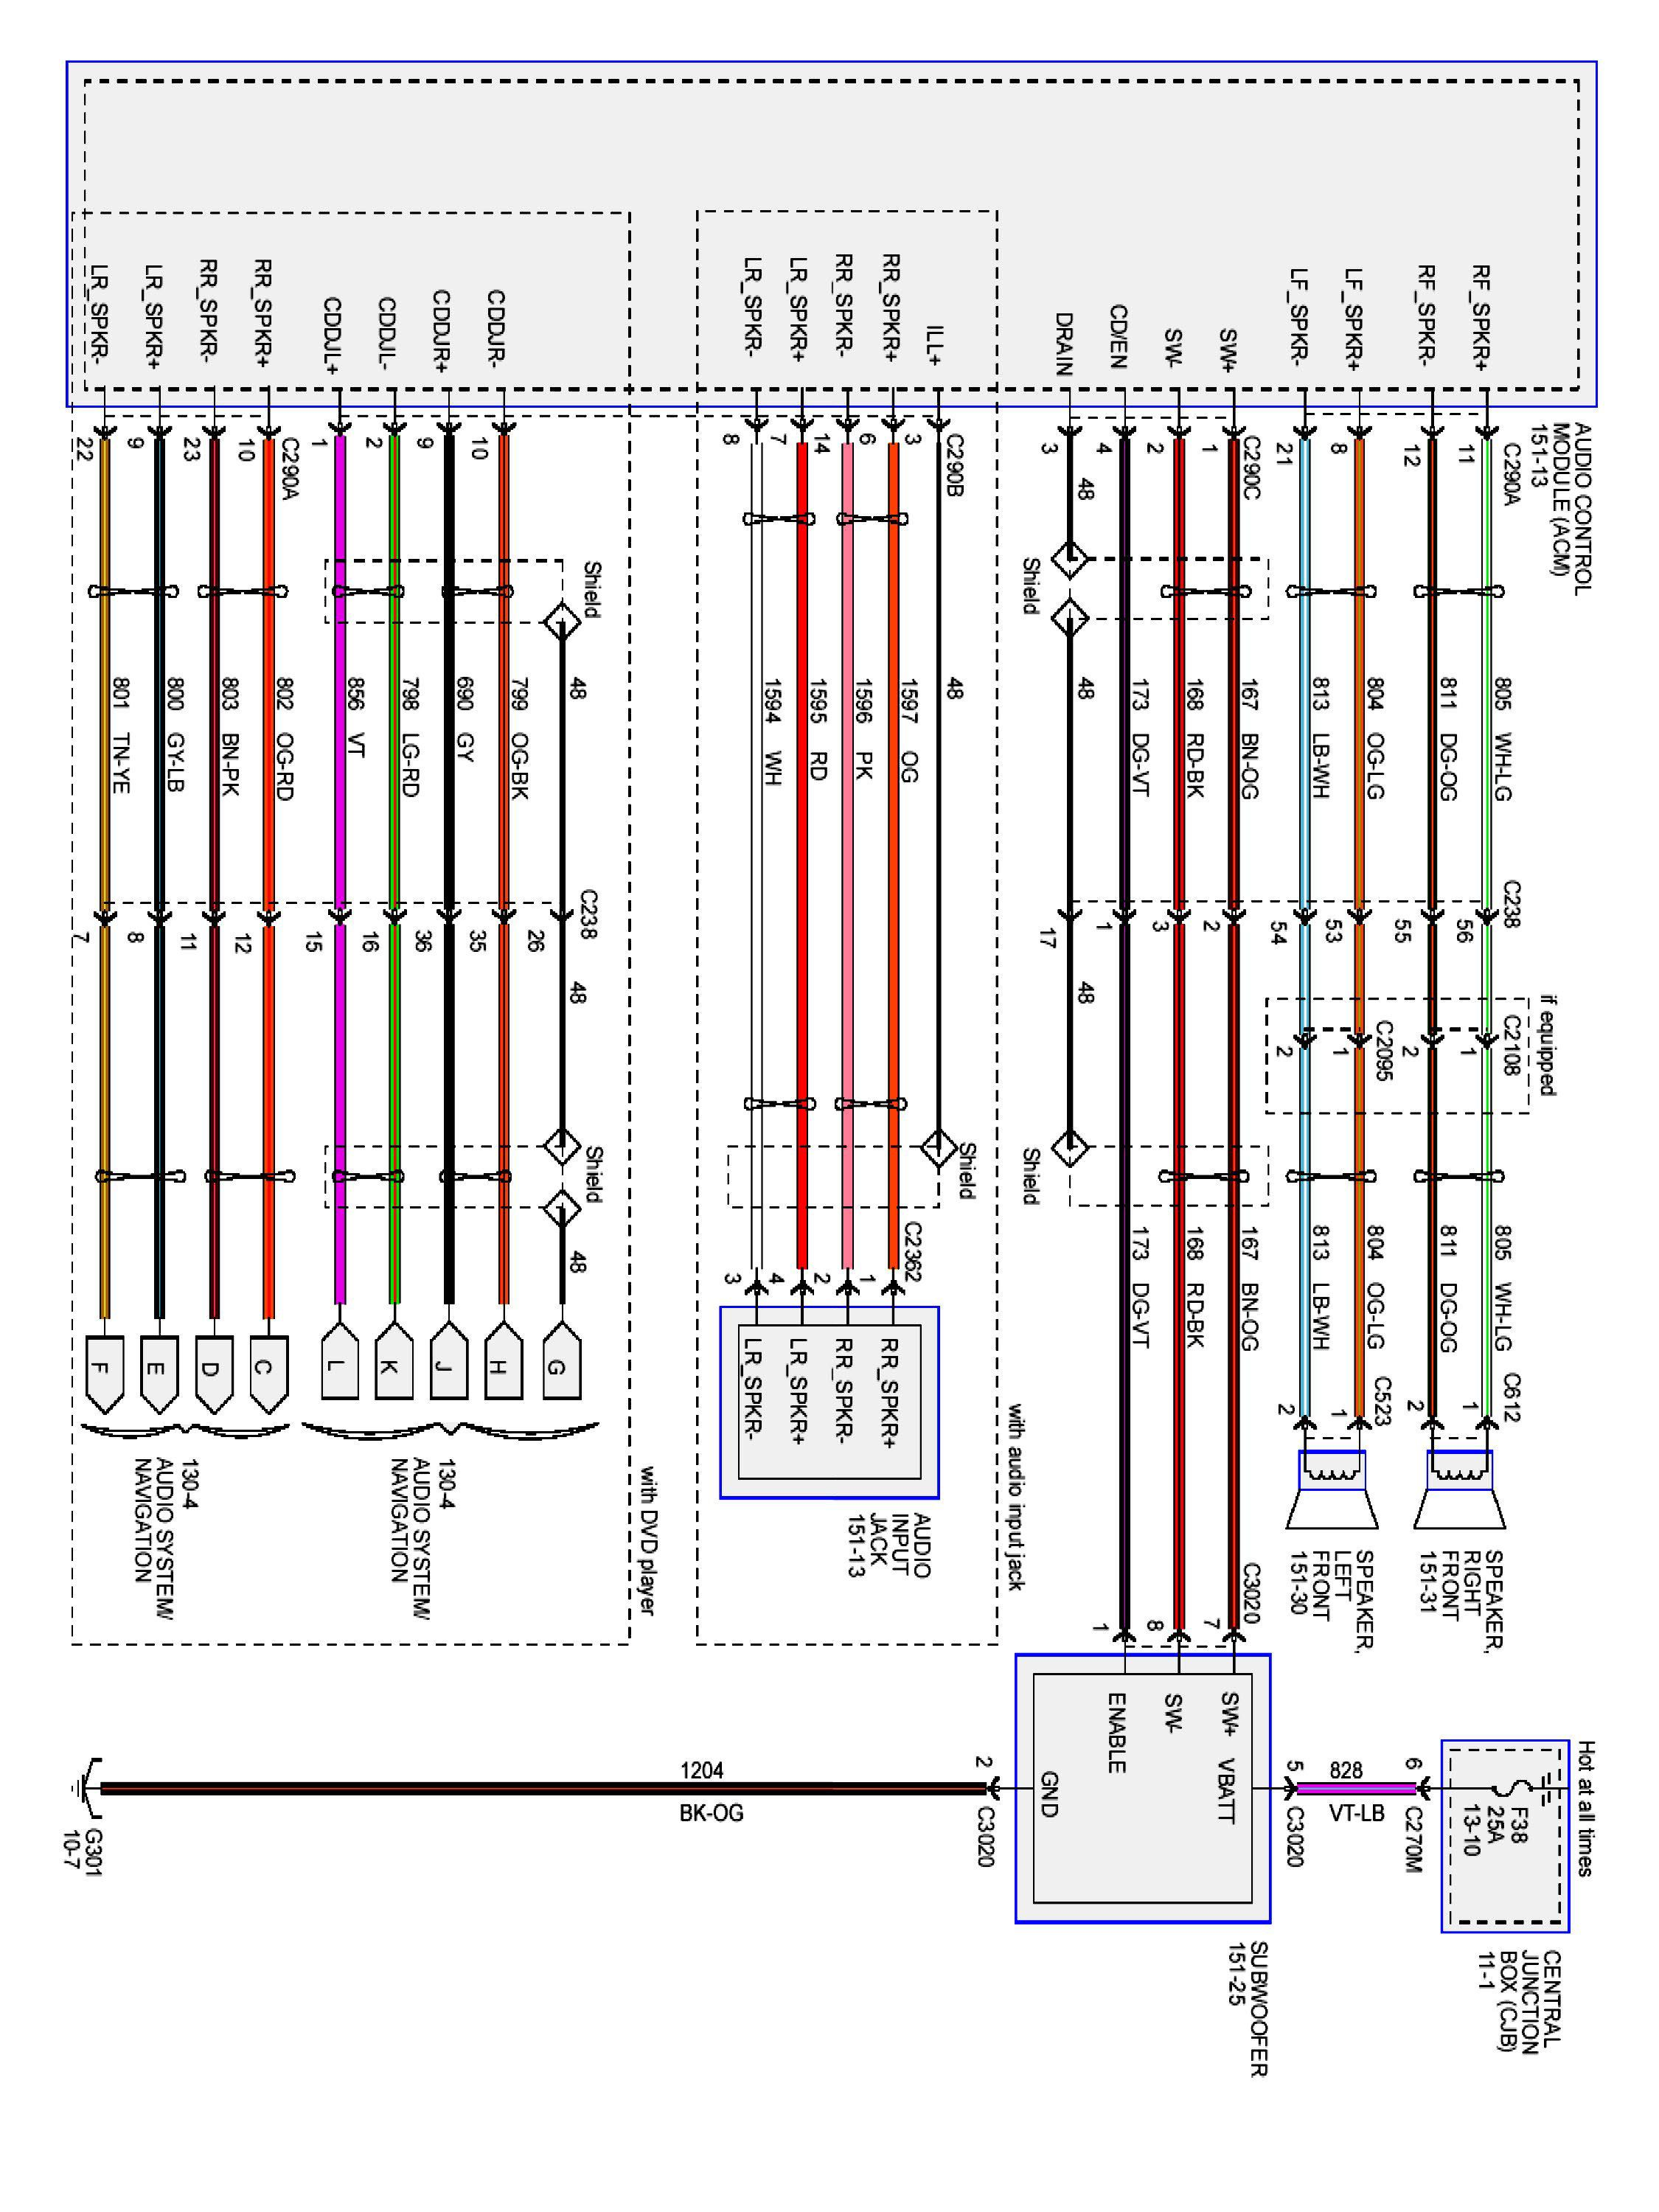 44 New 2004 Ford F150 Radio Wiring Diagram Ford Expedition 2004 Ford F150 Ford Ranger